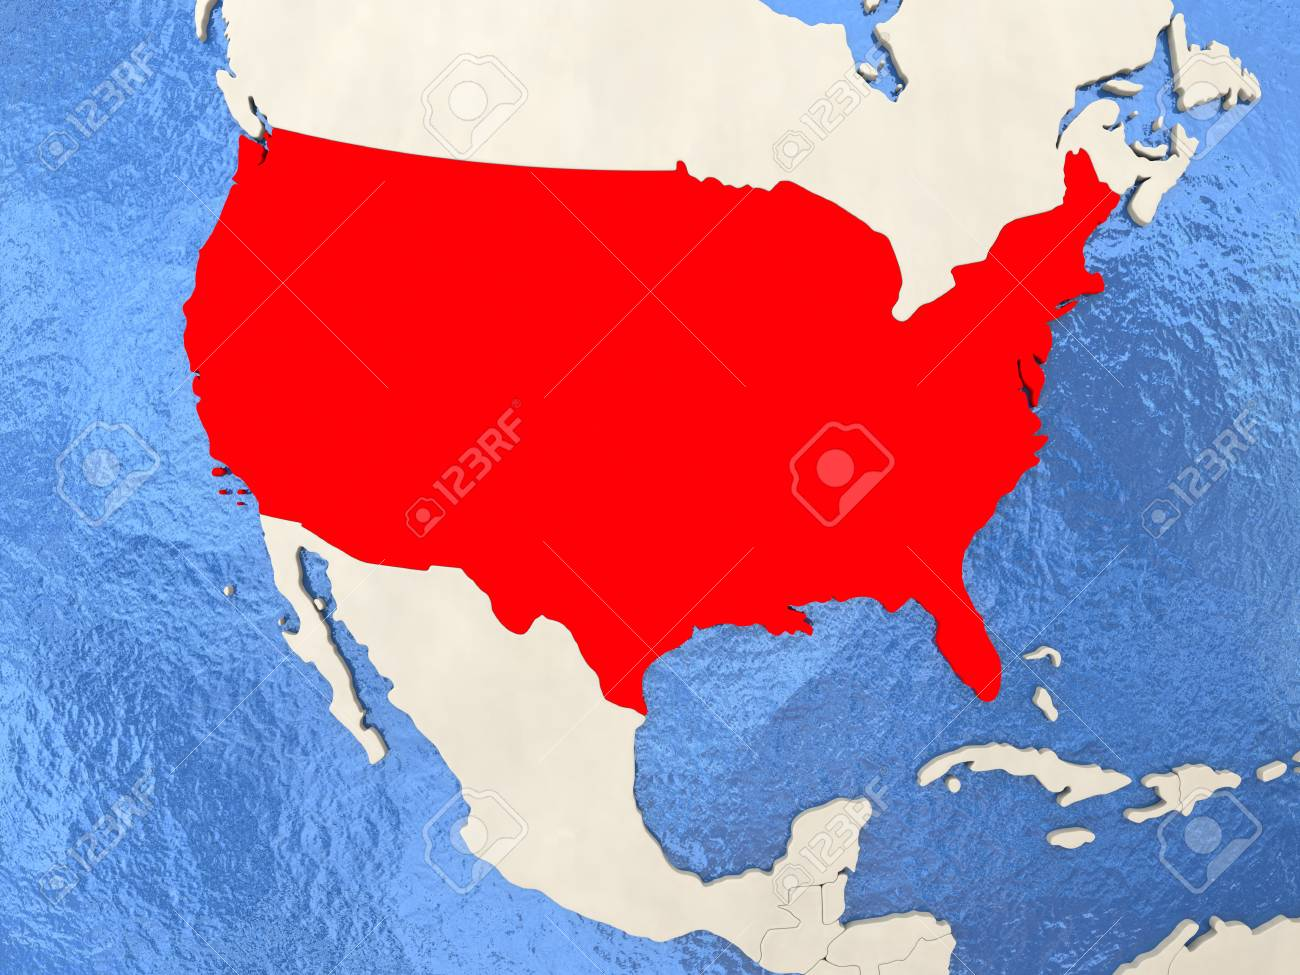 USA In Red On Political Map With Watery Oceans 3D Illustration